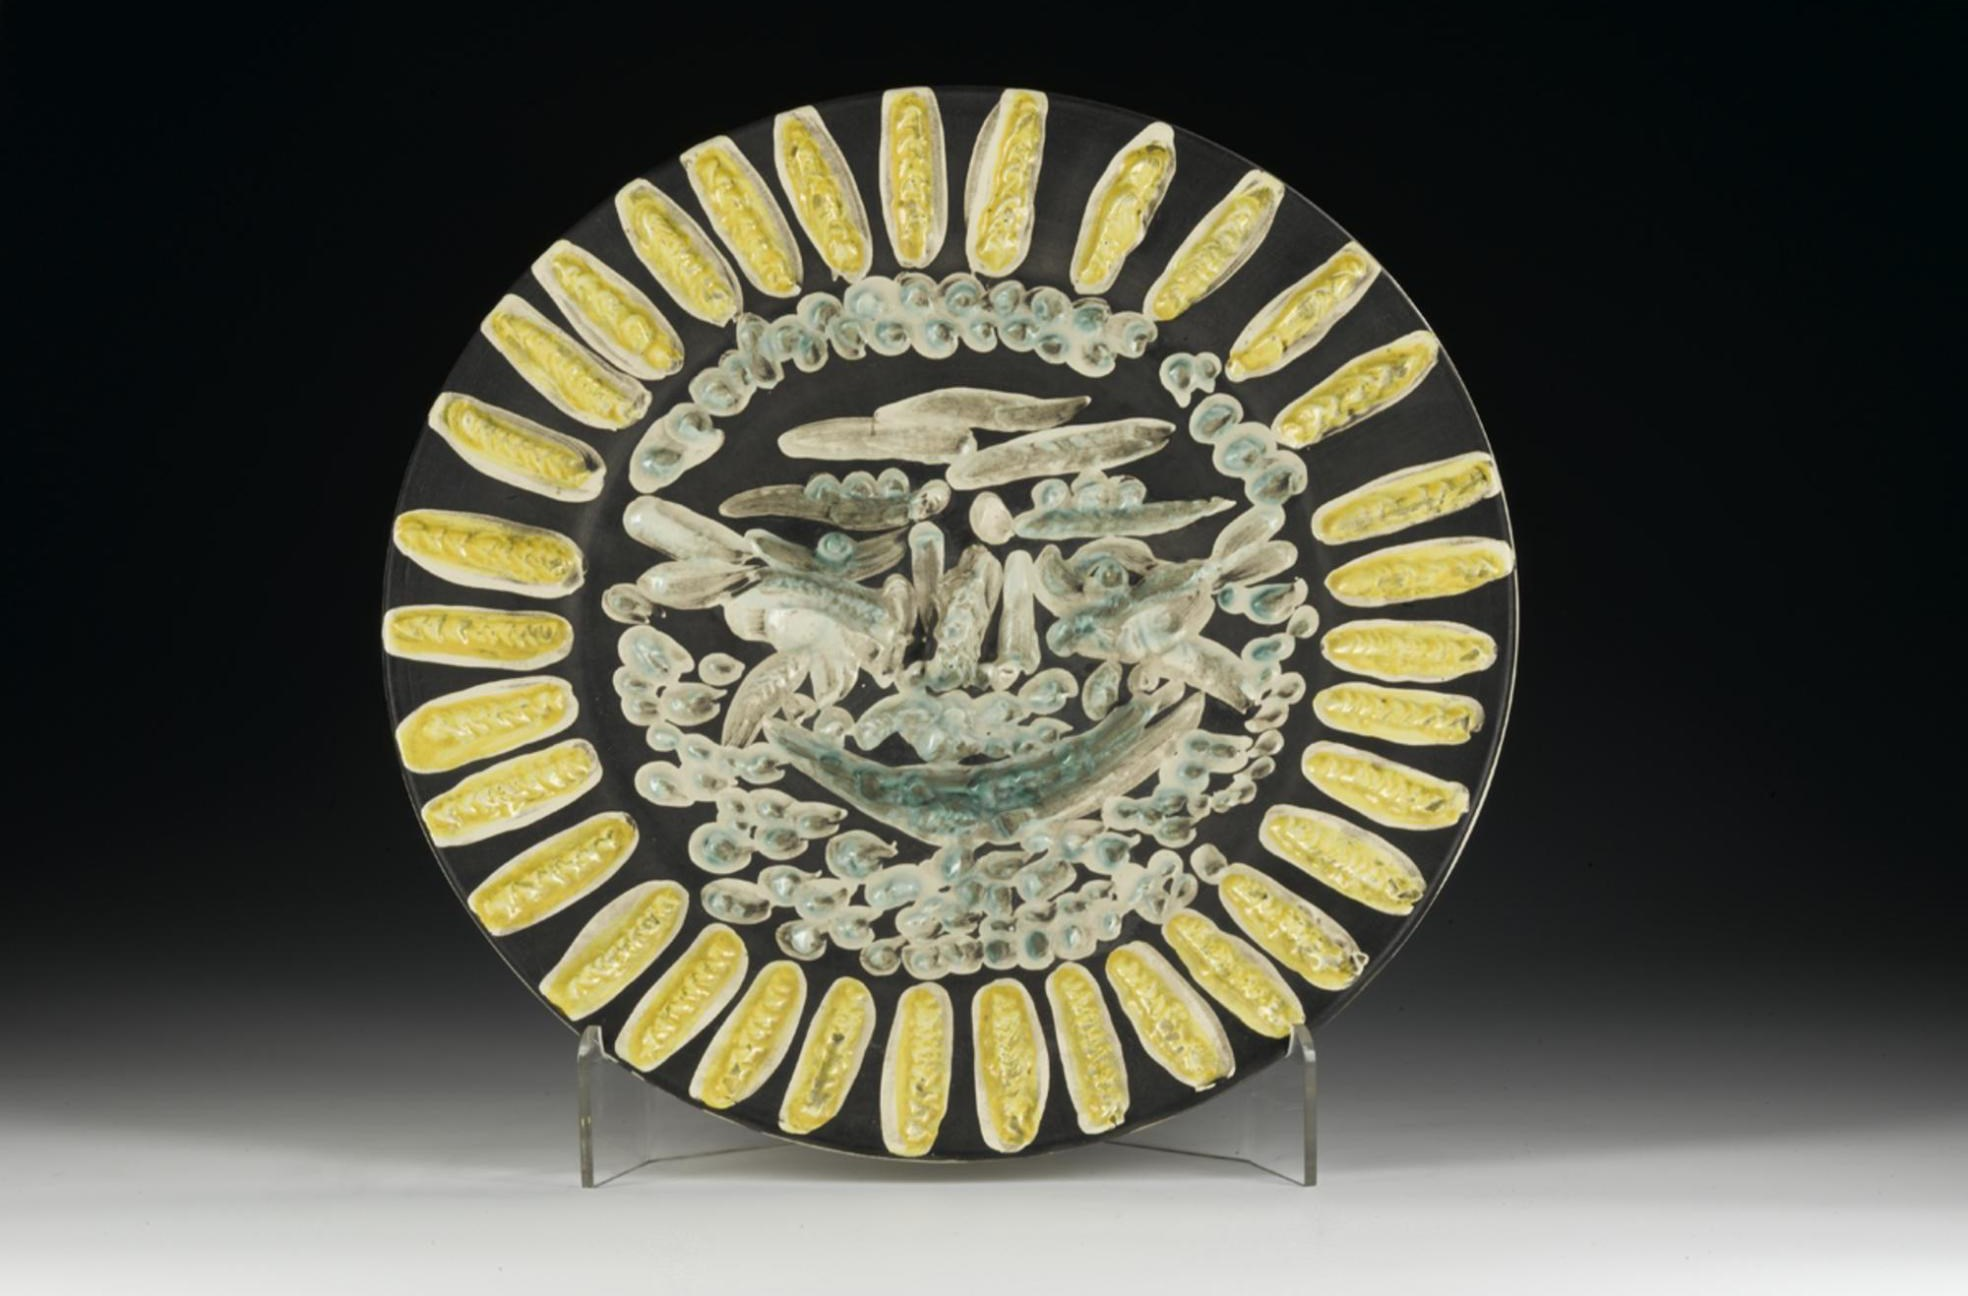 Ceramic dish entitled 'Visage Tourmente', designed by Pablo Picasso in the 1950s